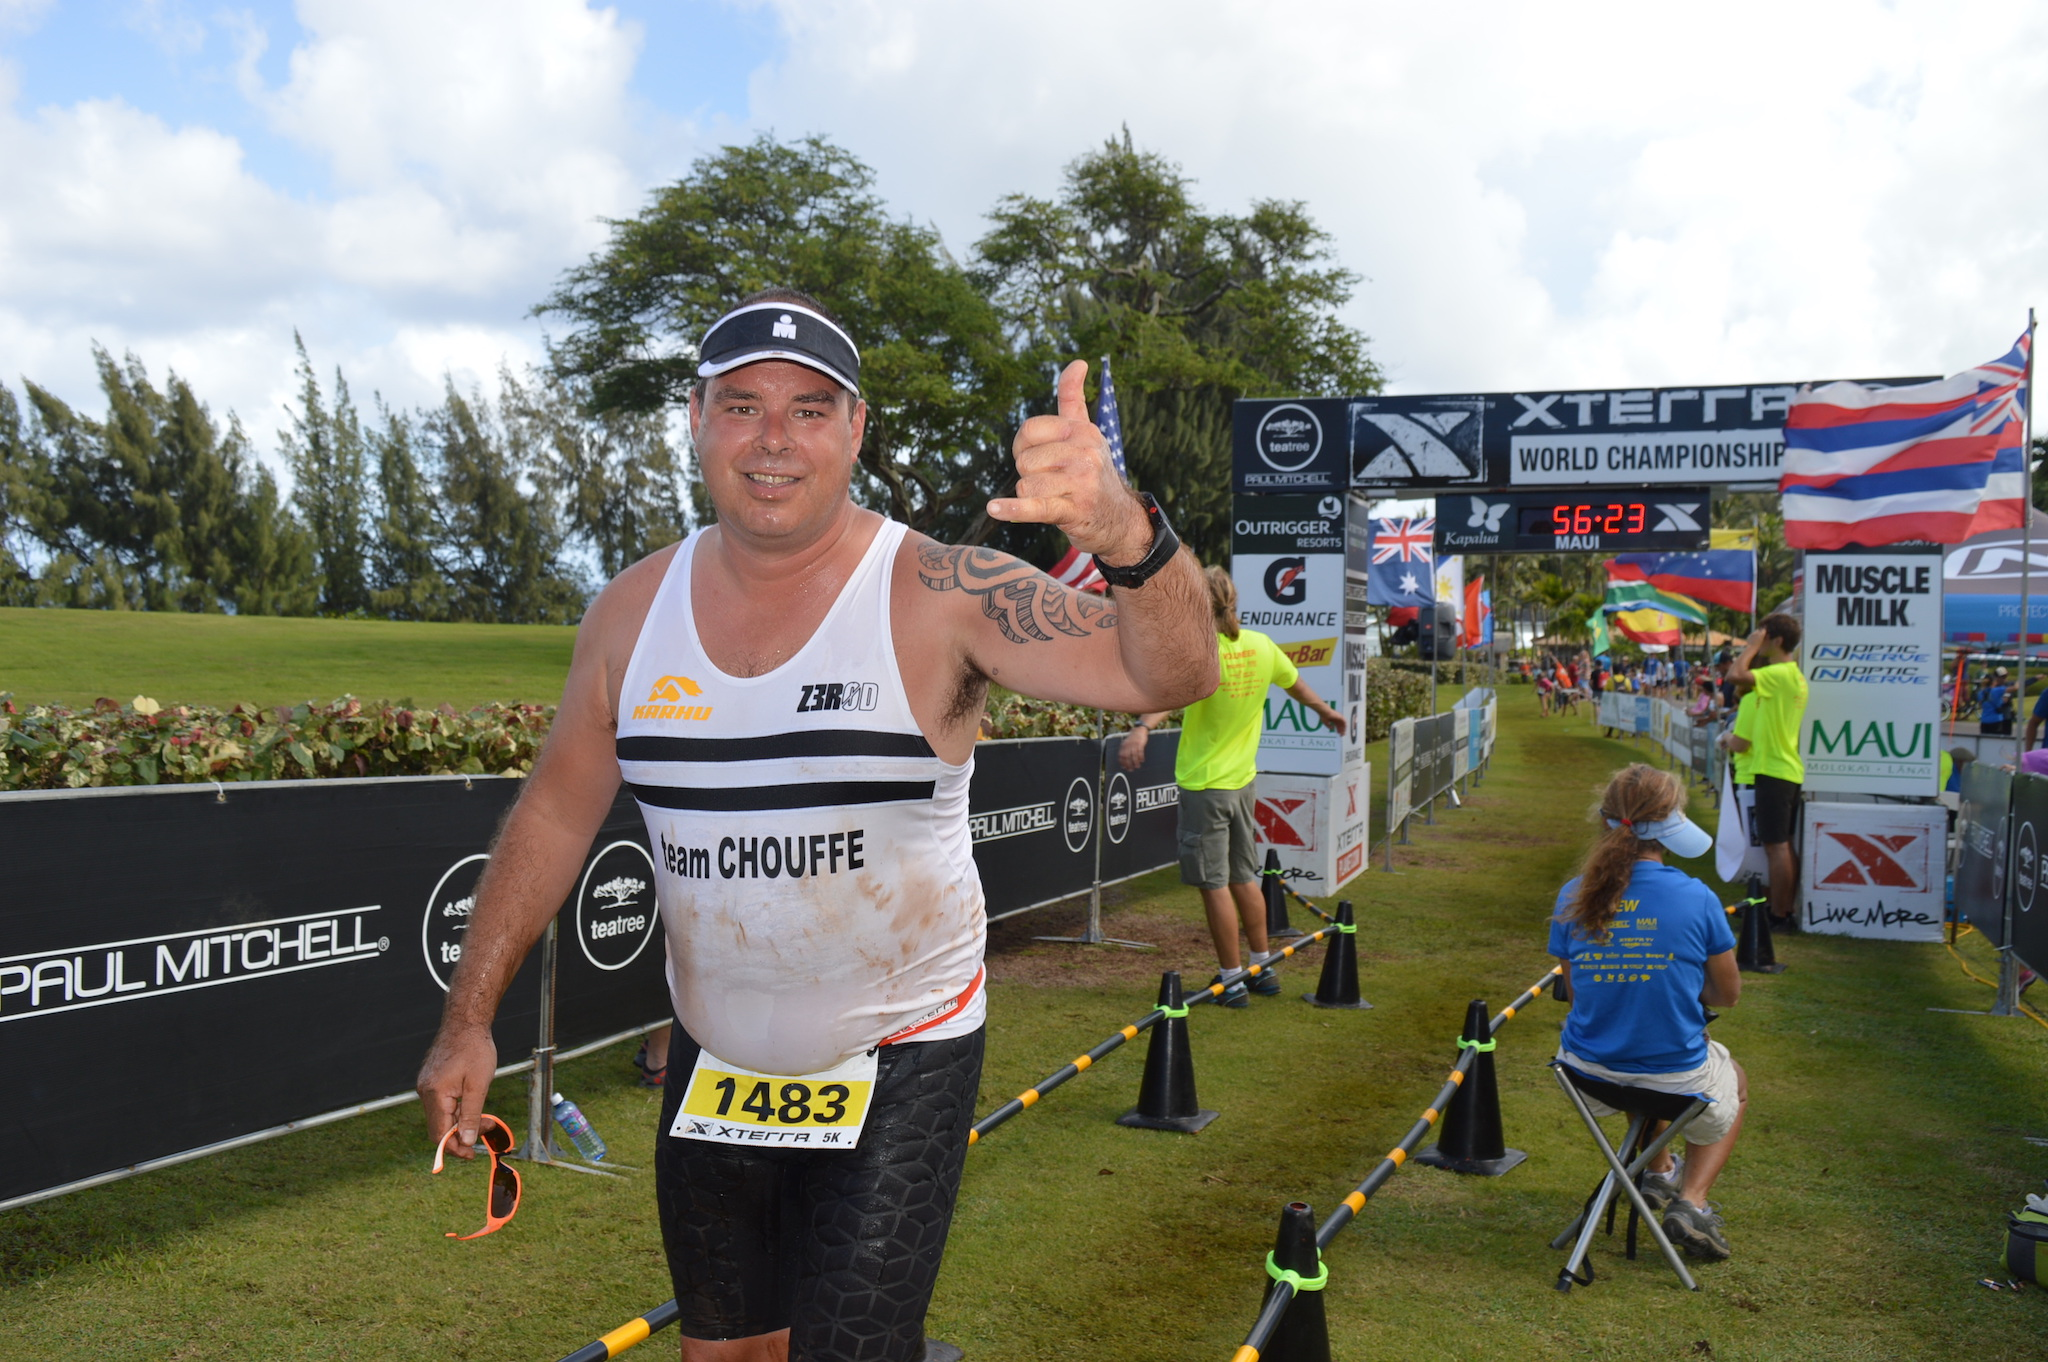 hans-finish-xterra-trail